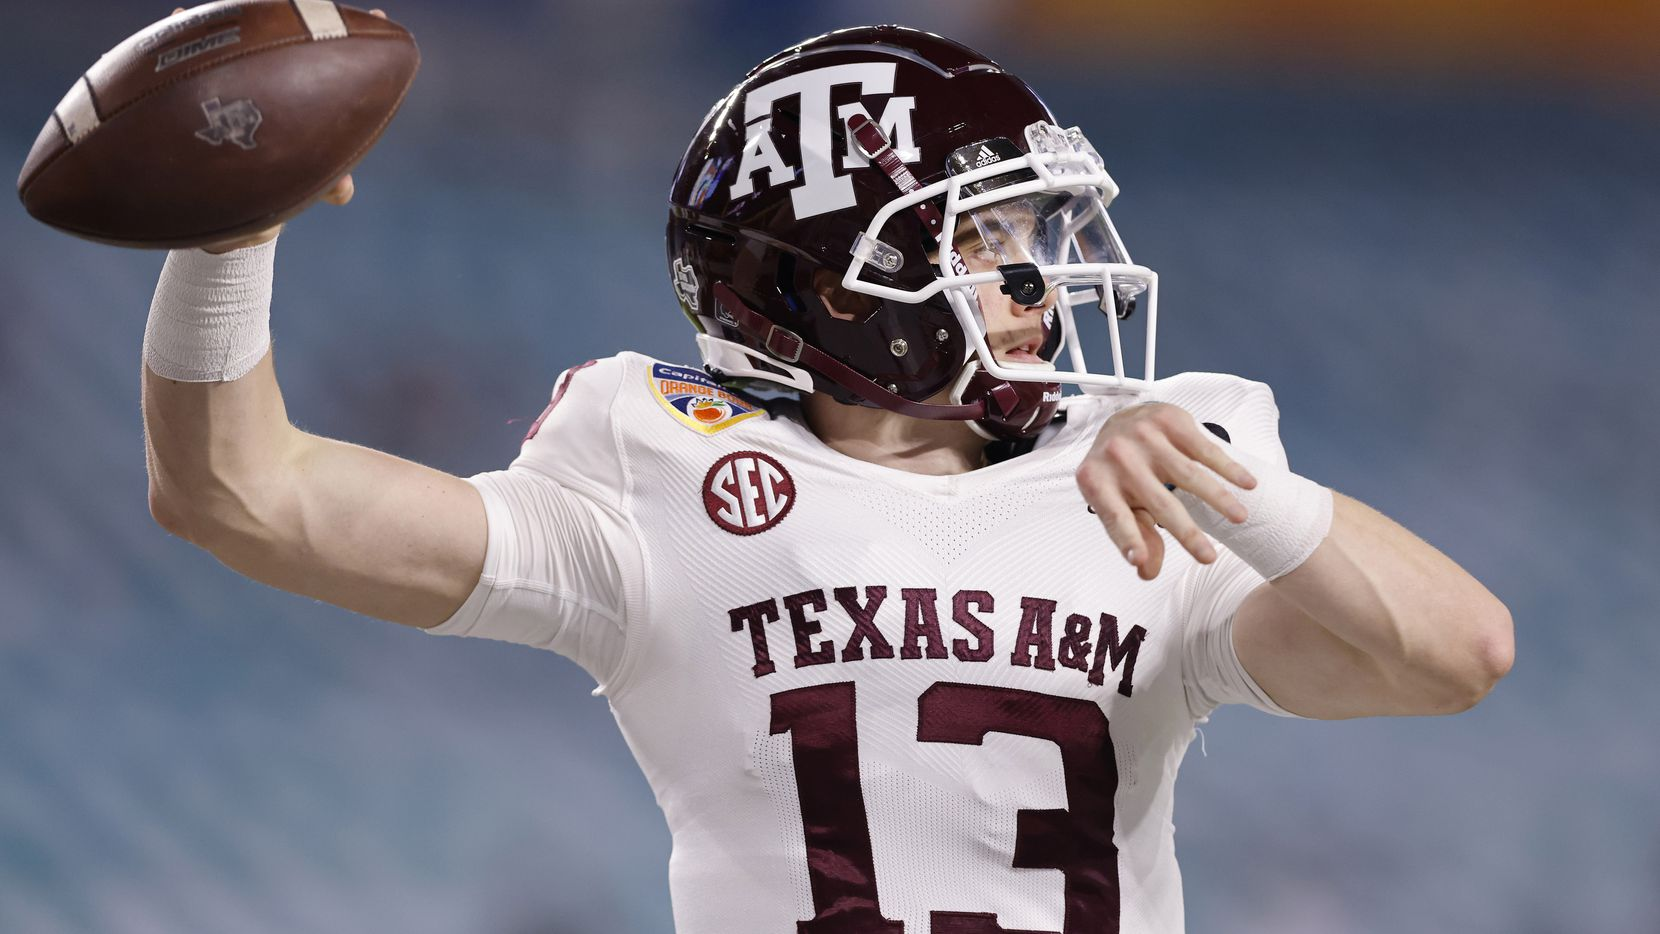 MIAMI GARDENS, FLORIDA - JANUARY 02: Haynes King #13 of the Texas A&M Aggies warms up prior to the Capital One Orange Bowl against the North Carolina Tar Heels at Hard Rock Stadium on January 02, 2021 in Miami Gardens, Florida. (Photo by Michael Reaves/Getty Images)